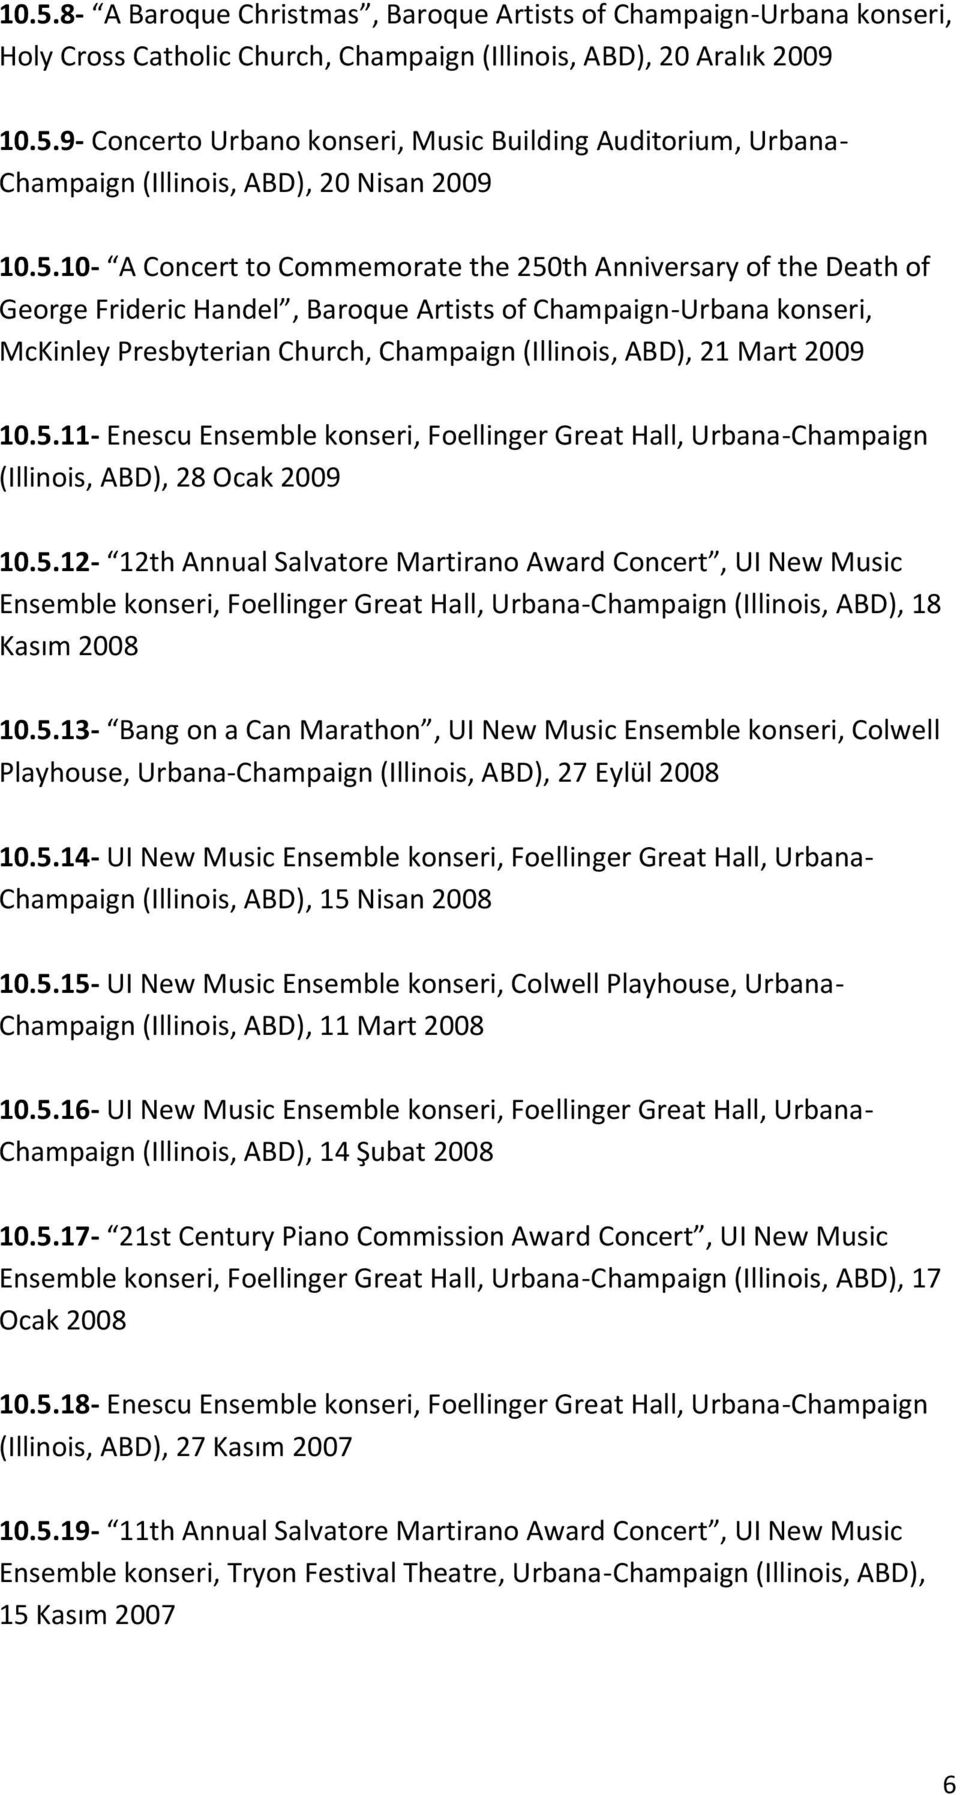 Mart 2009 10.5.11- Enescu Ensemble konseri, Foellinger Great Hall, Urbana-Champaign (Illinois, ABD), 28 Ocak 2009 10.5.12-12th Annual Salvatore Martirano Award Concert, UI New Music Ensemble konseri, Foellinger Great Hall, Urbana-Champaign (Illinois, ABD), 18 Kasım 2008 10.